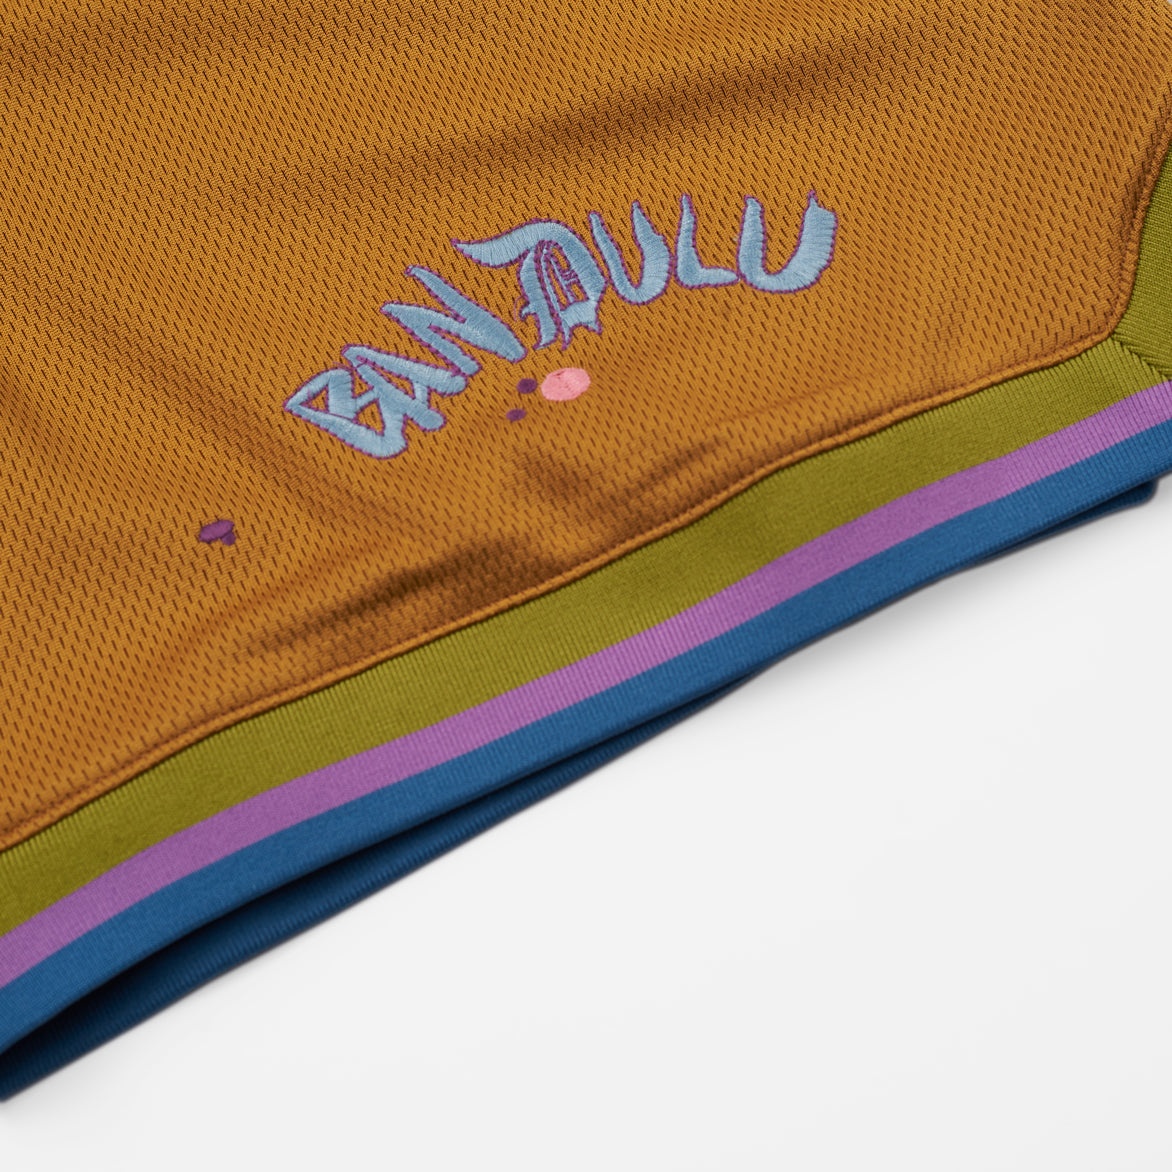 BANDULU X CONVERSE SHORTS - WOOD THRUSH